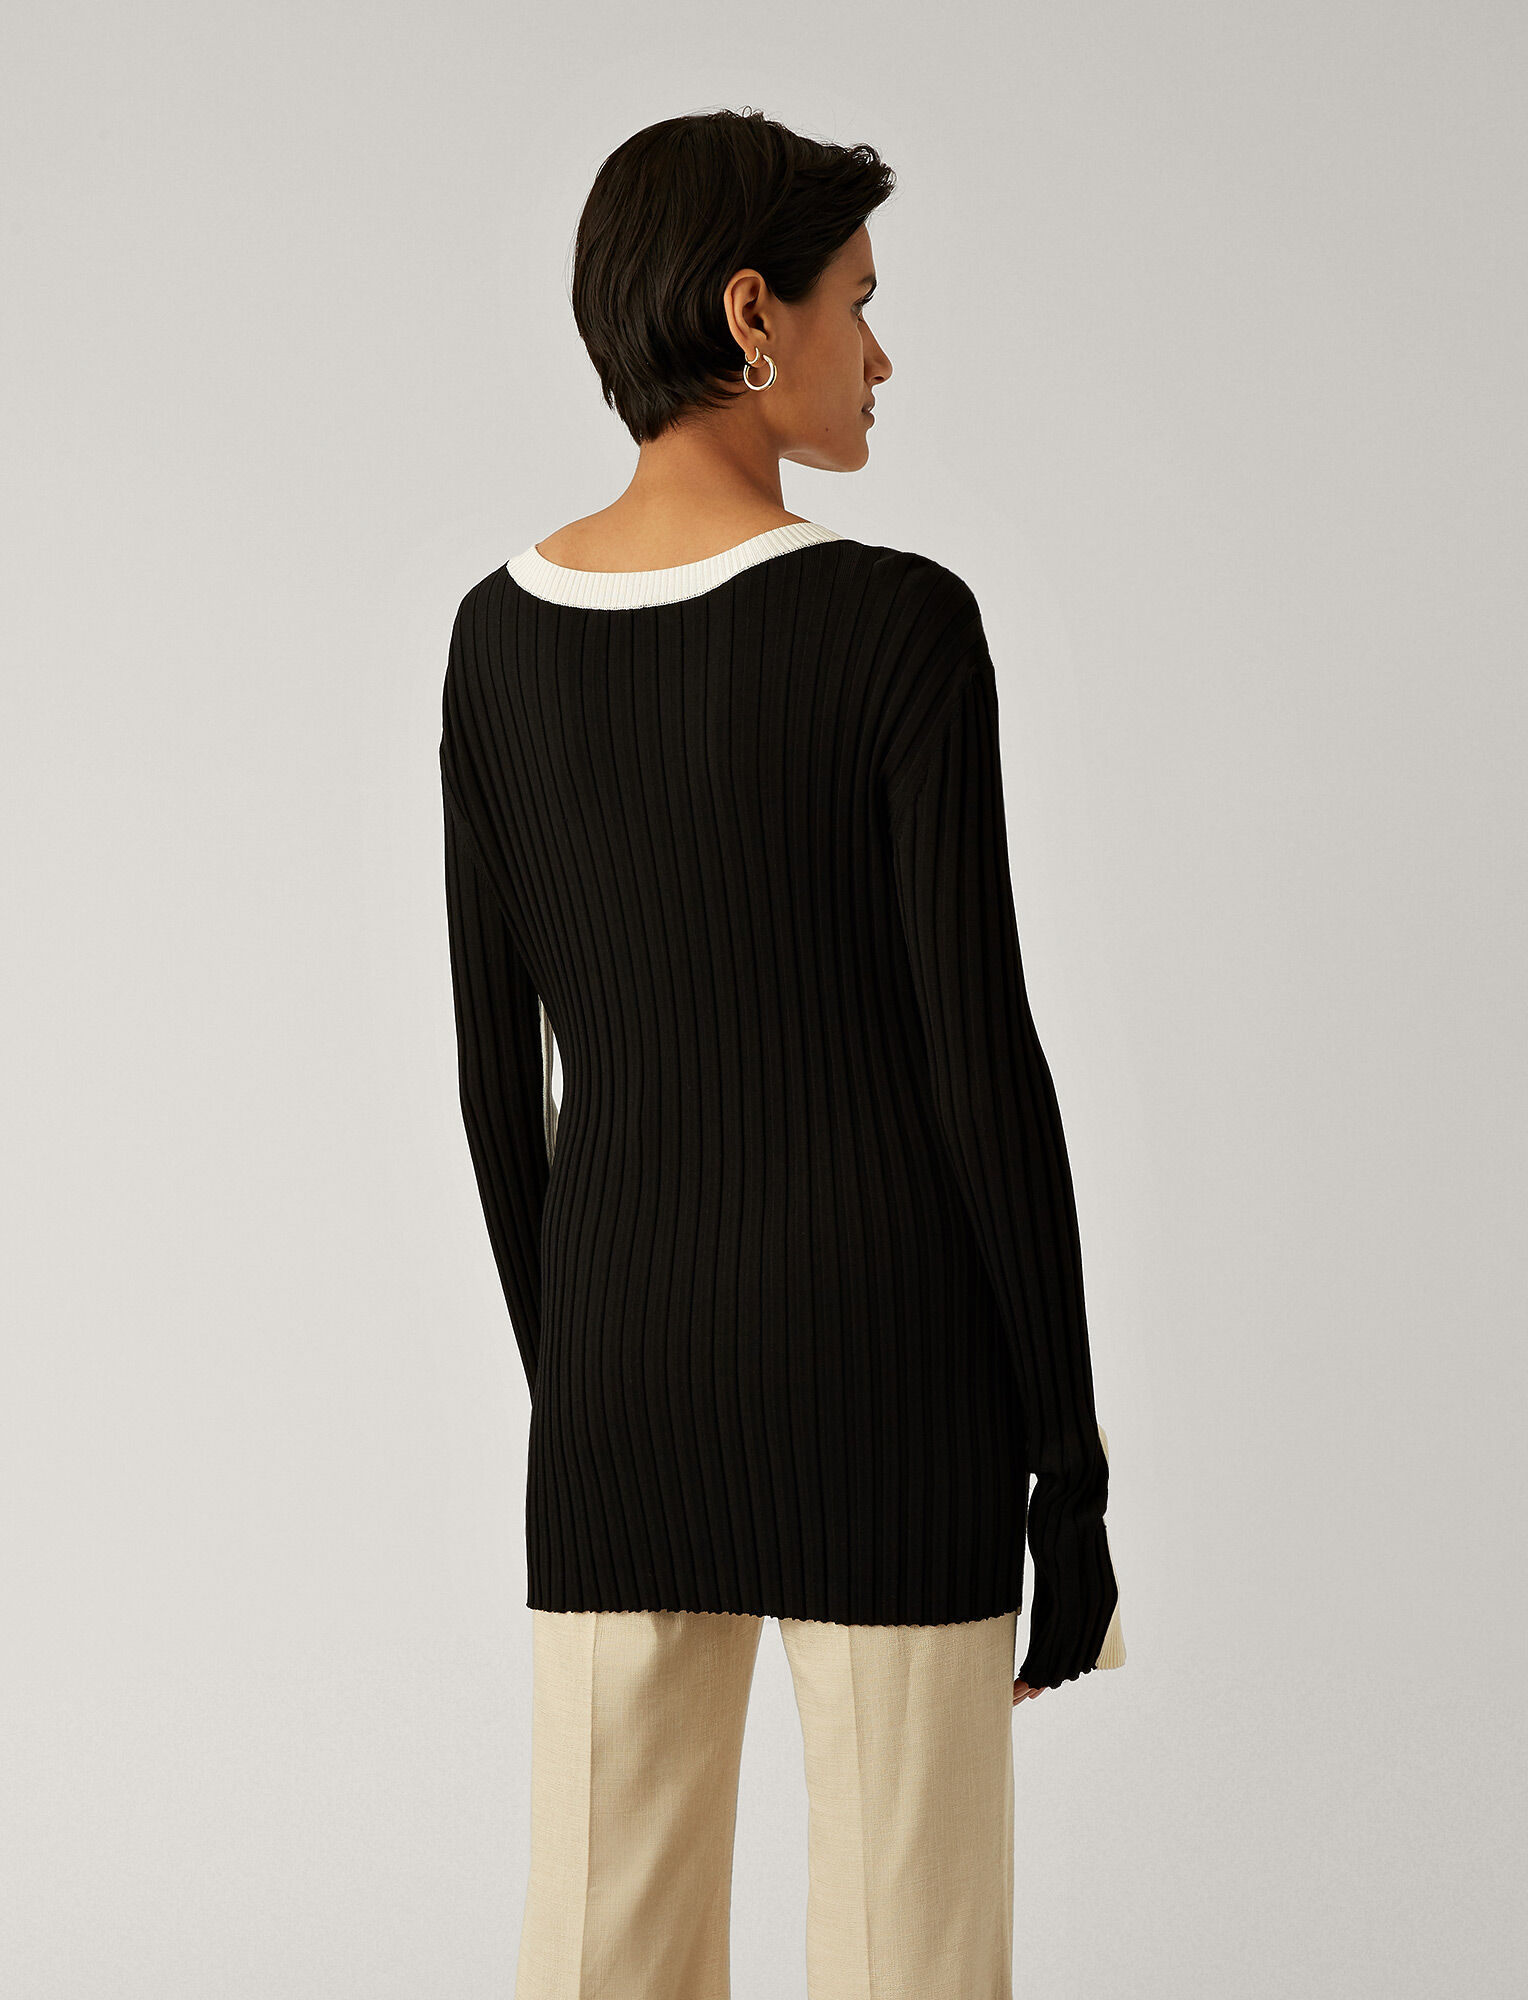 Joseph, Mix Rib Knit, in BLACK COMBO